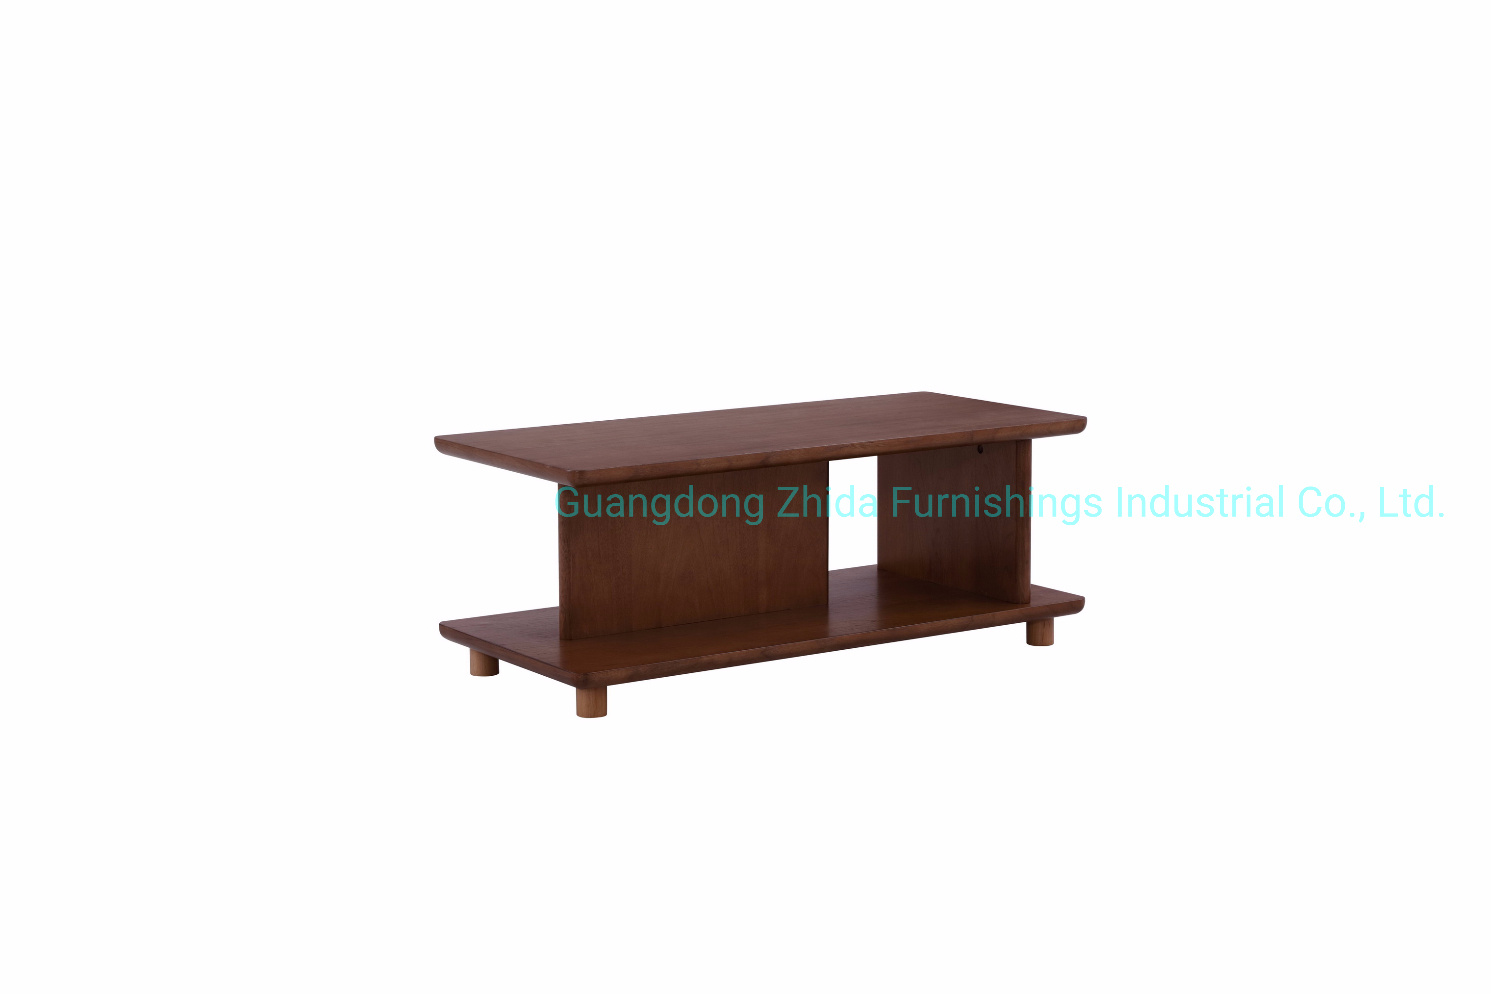 China Wooden Coffee Table Sofa Side Table Walnut Veneer China Coffee Table Marble Table